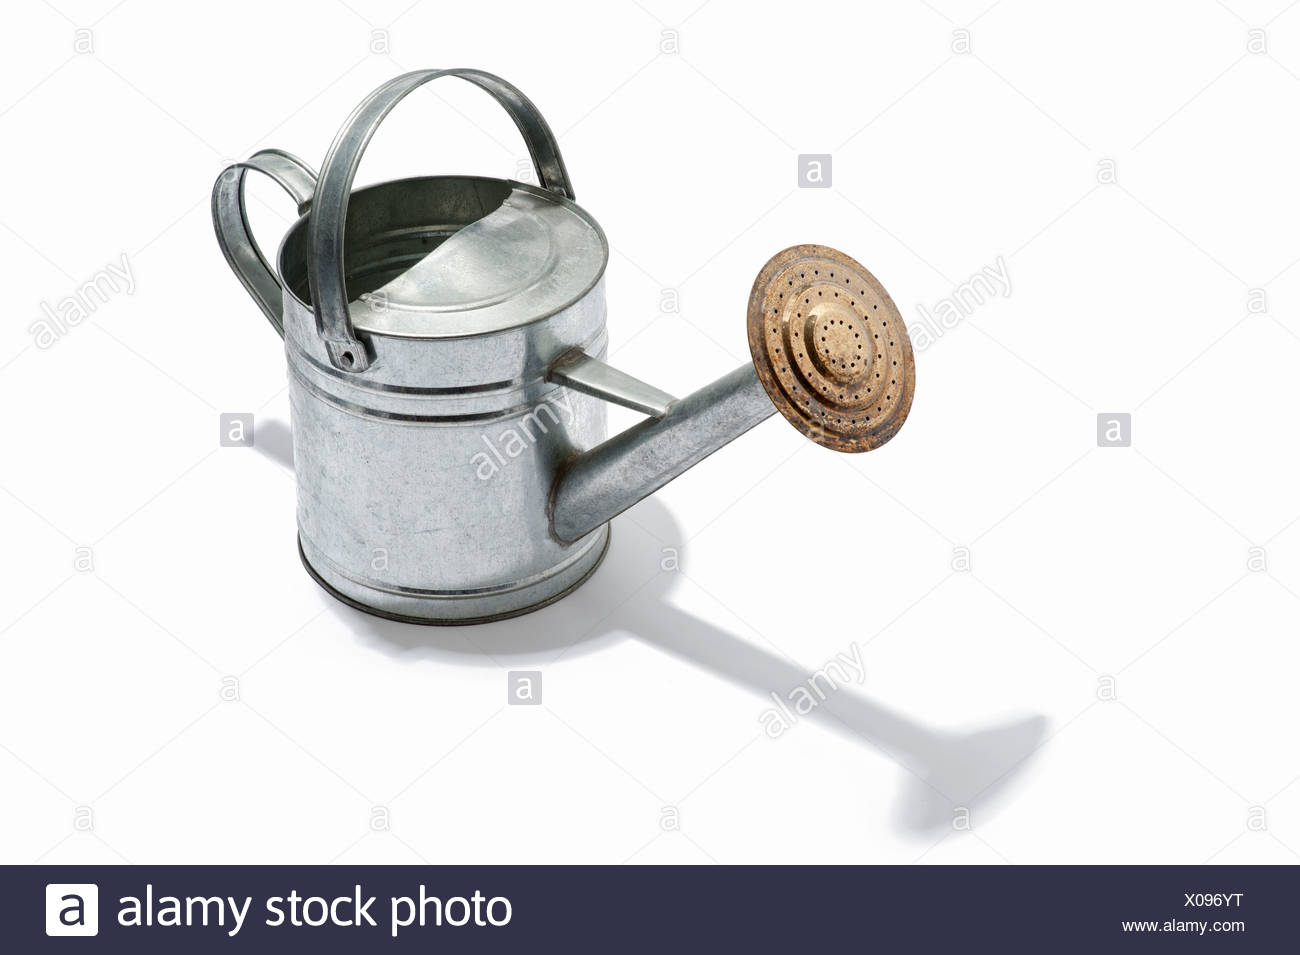 A metal watering can - Stock Image